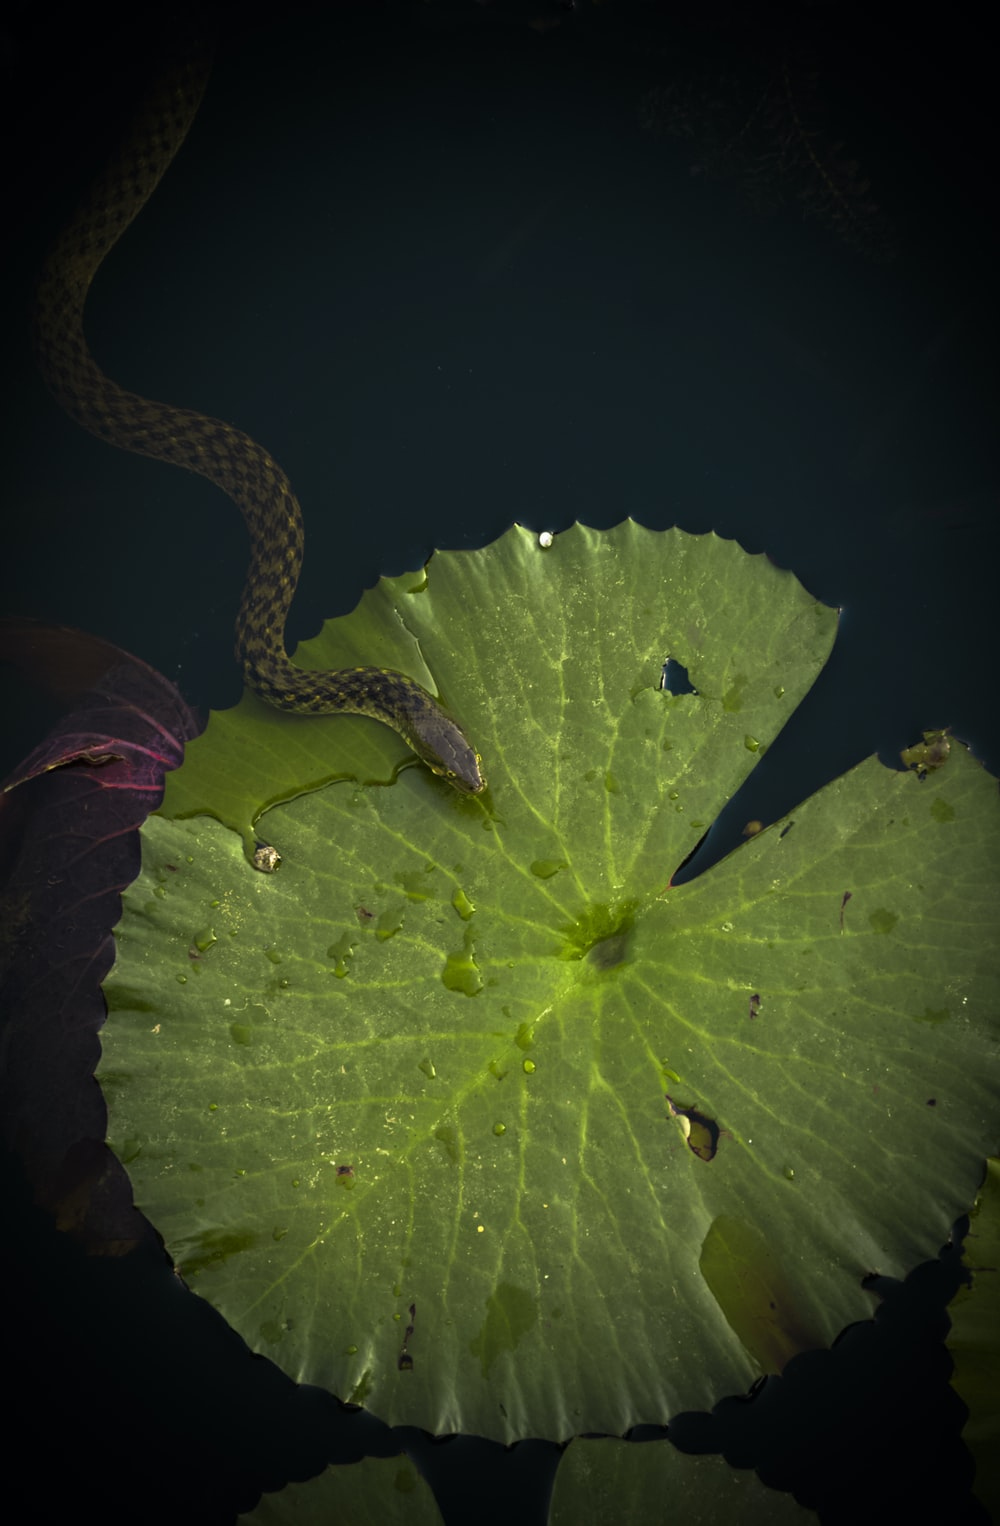 brown snake on top of green leaf